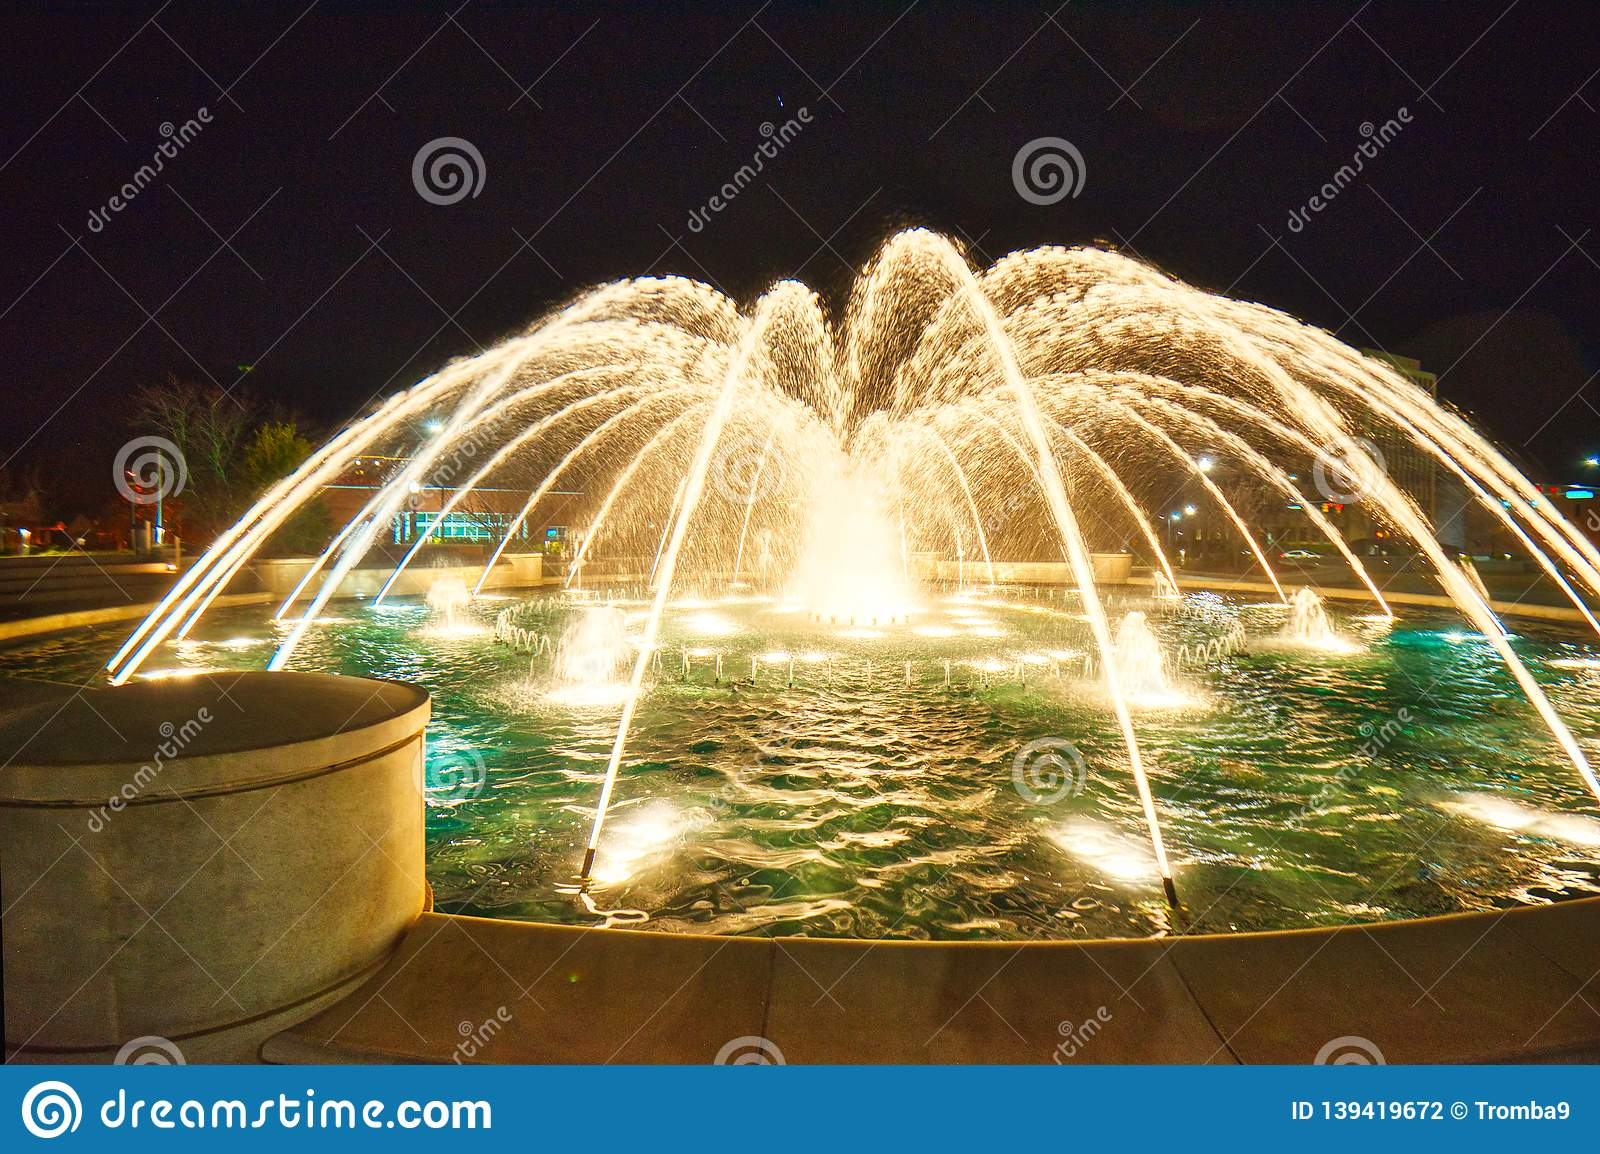 A composite image of 5 different exposures of a fountain at night.